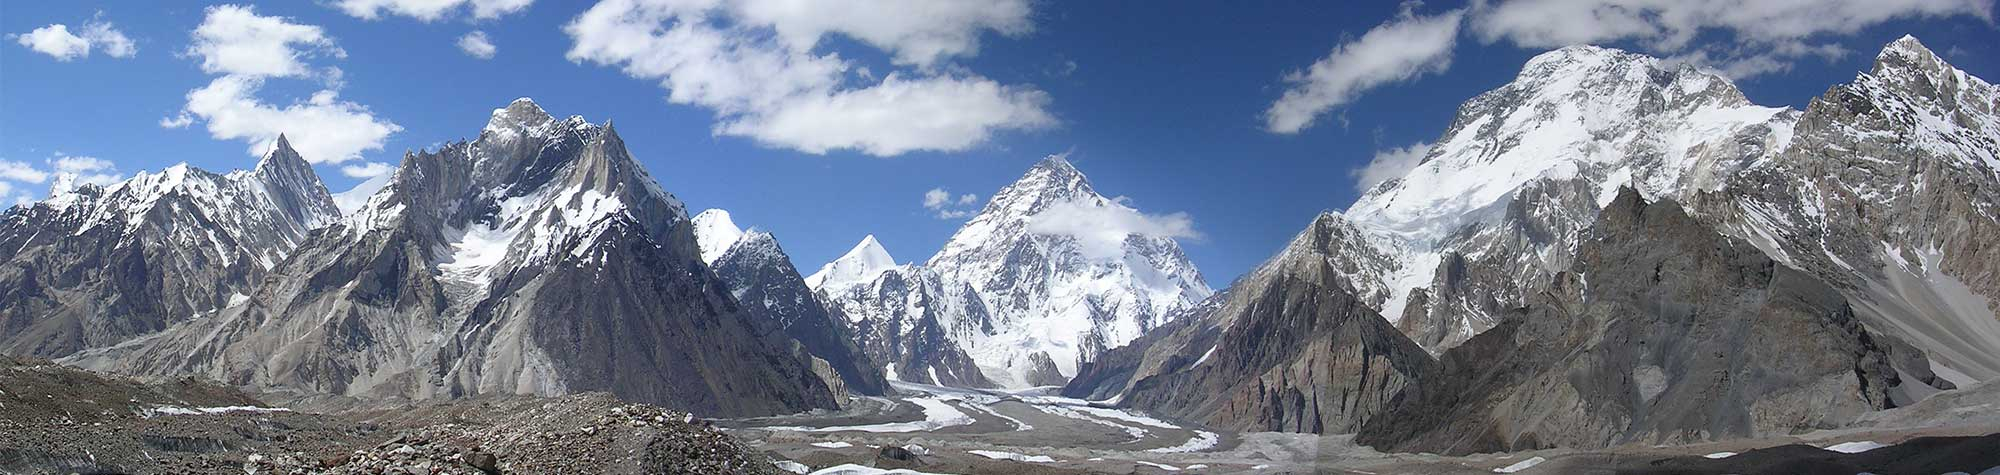 K2 Expedition – June 2016